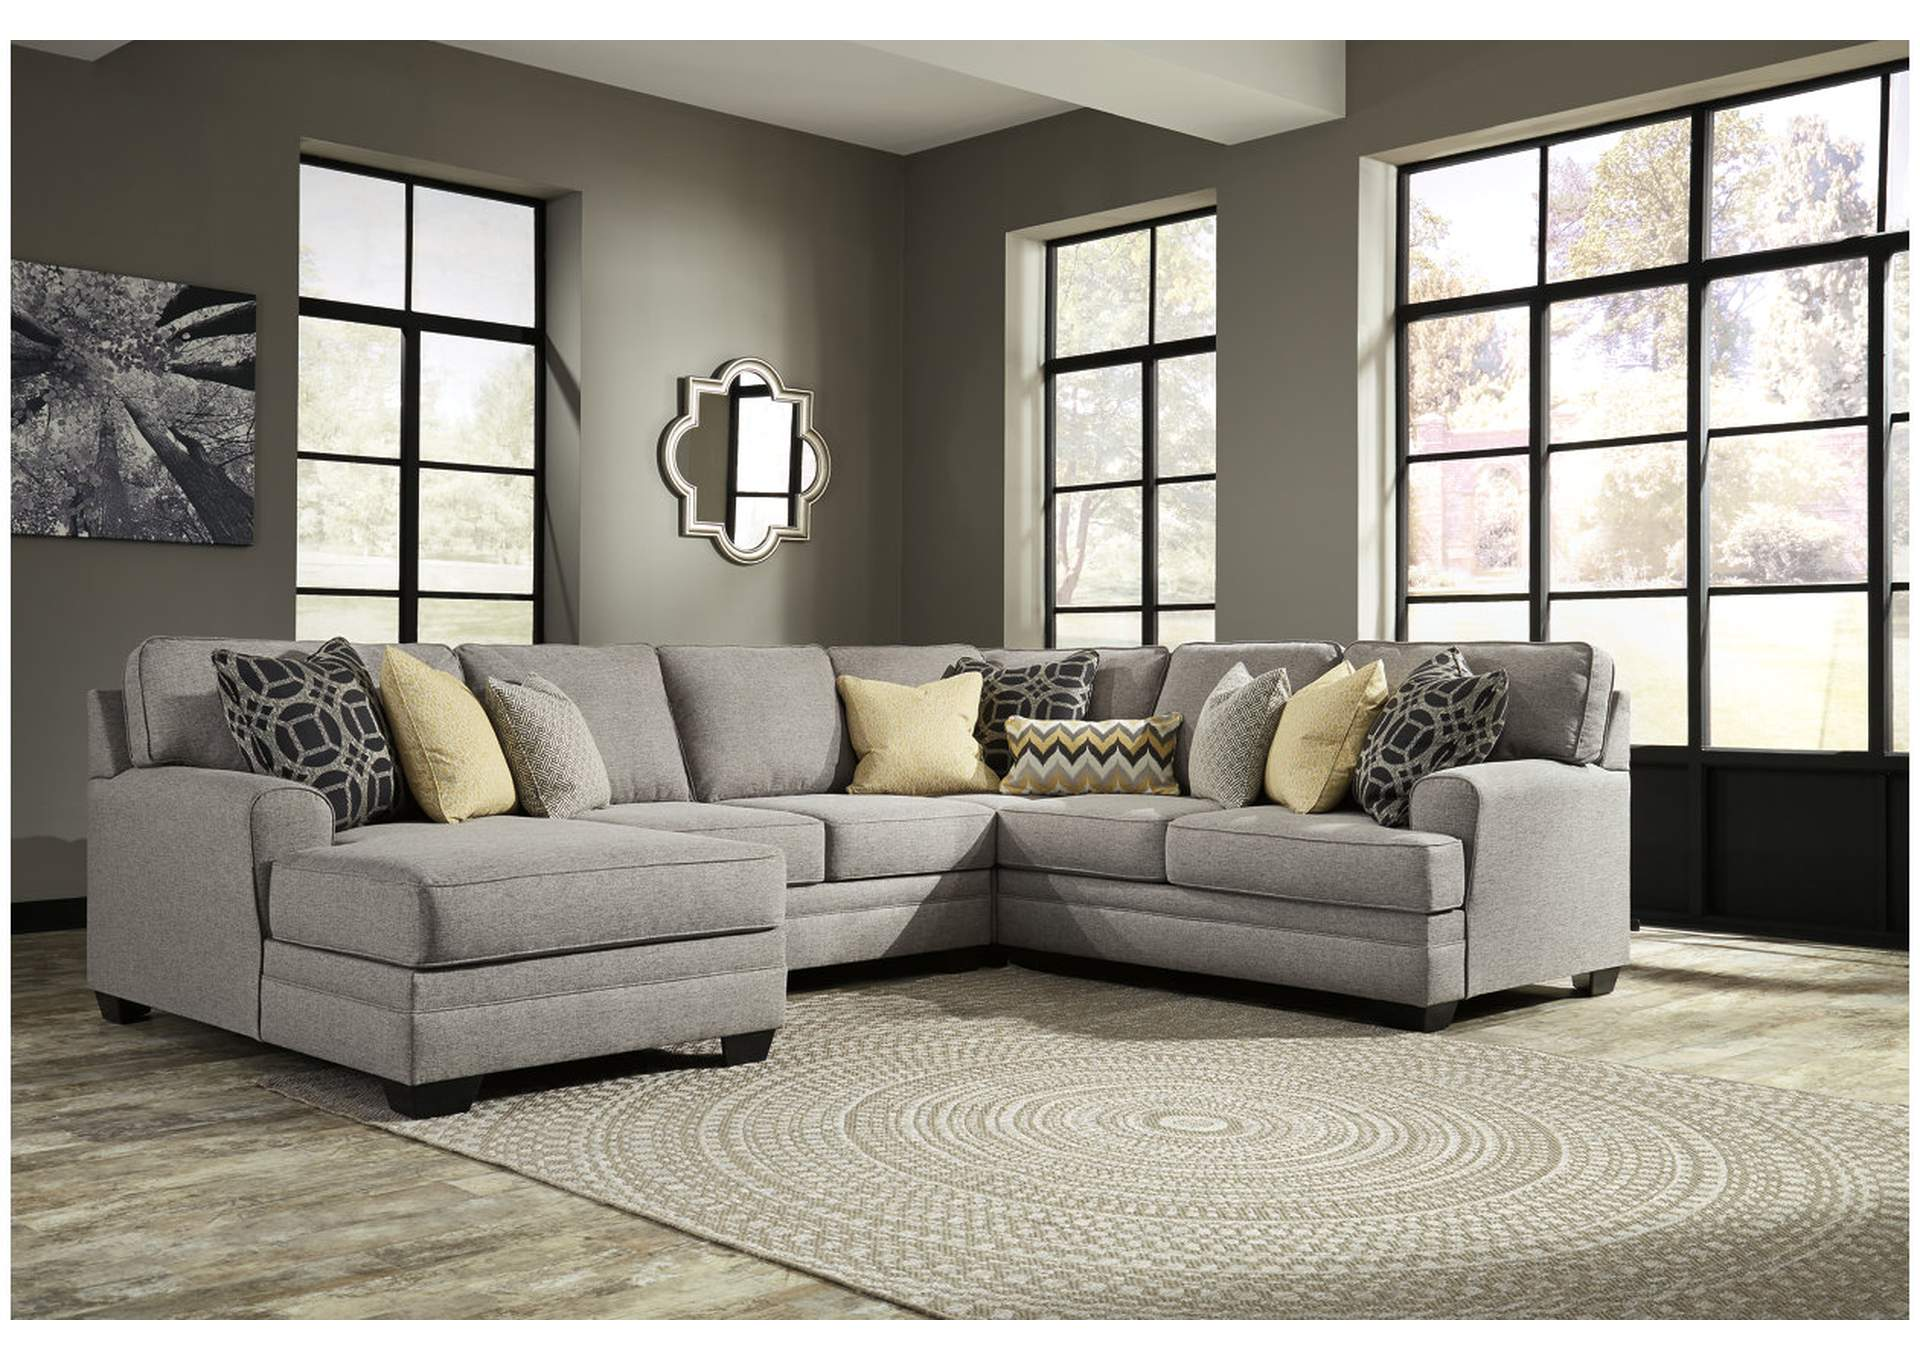 Cresson Pewter LAF Chaise Sectional,Benchcraft